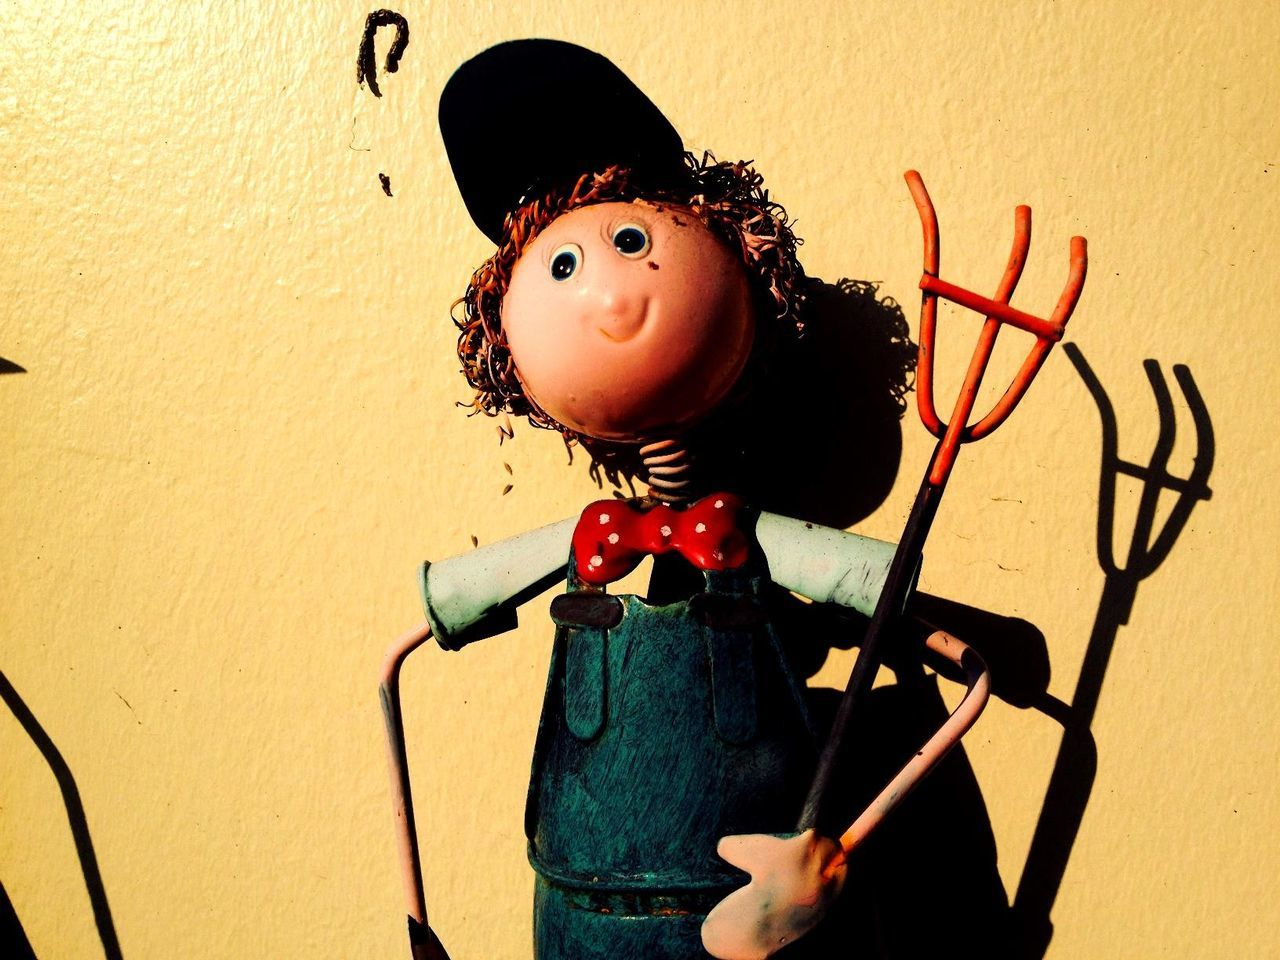 Character holding rake against yellow wall